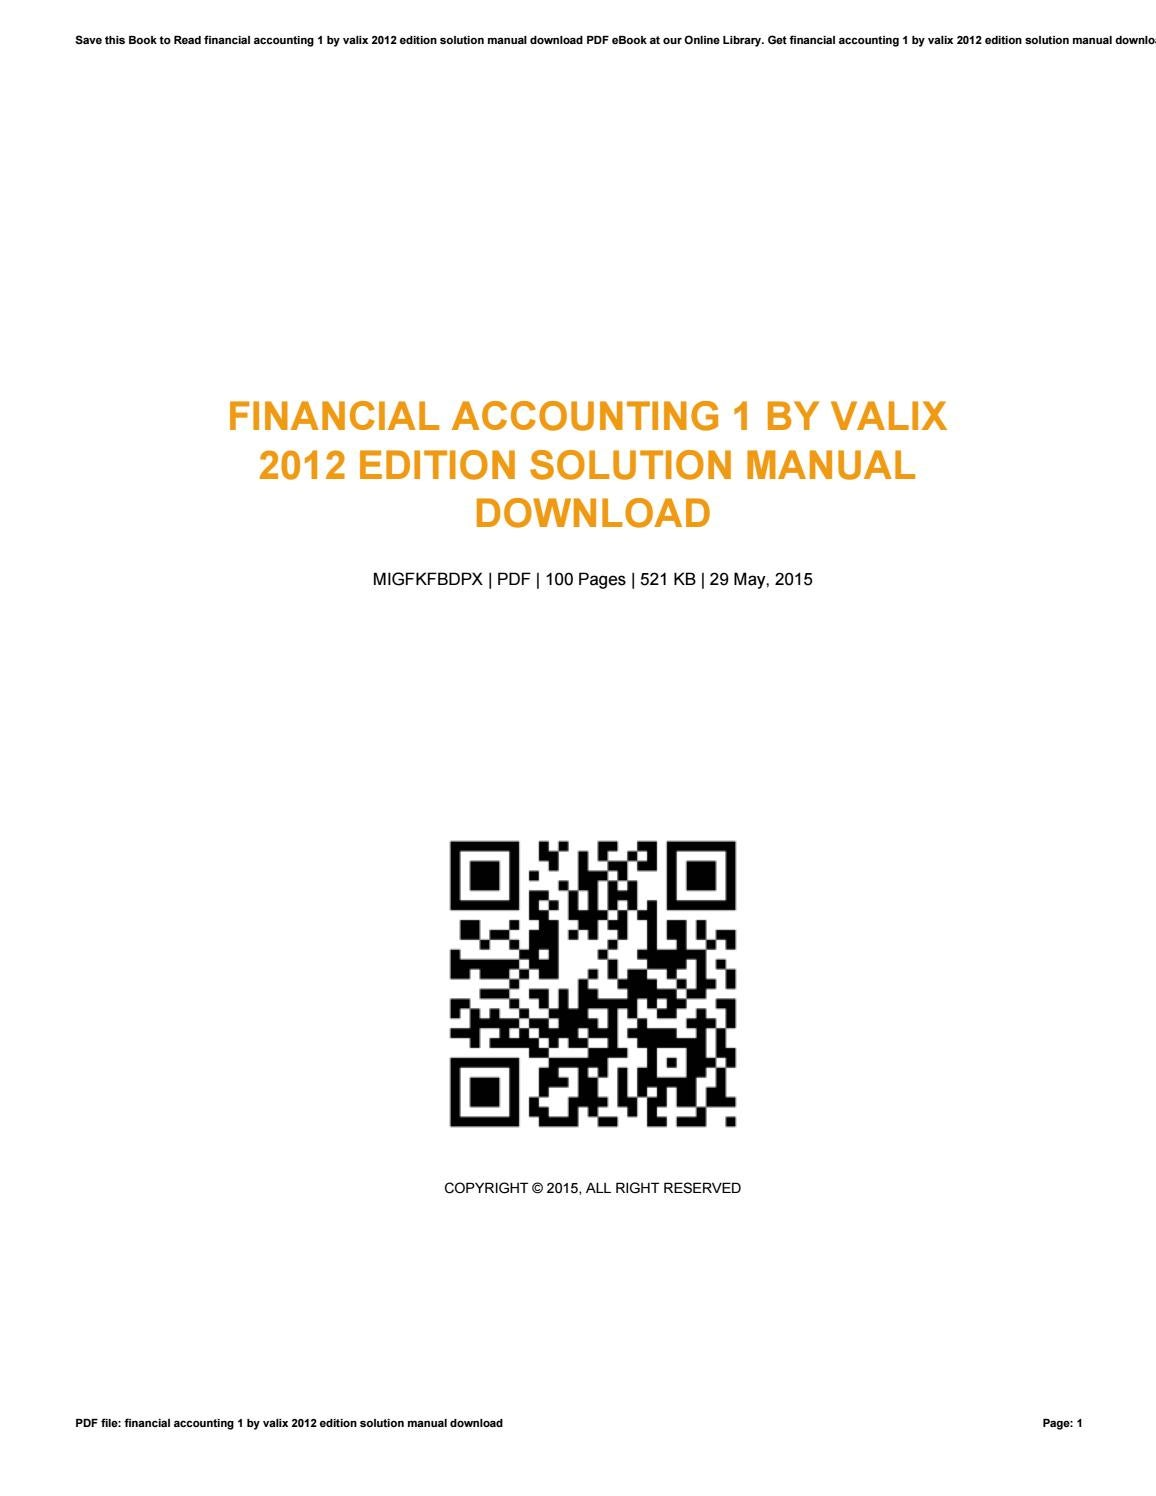 Financial accounting 1 by valix 2012 edition solution manual download by  LisaKeller4946 - issuu